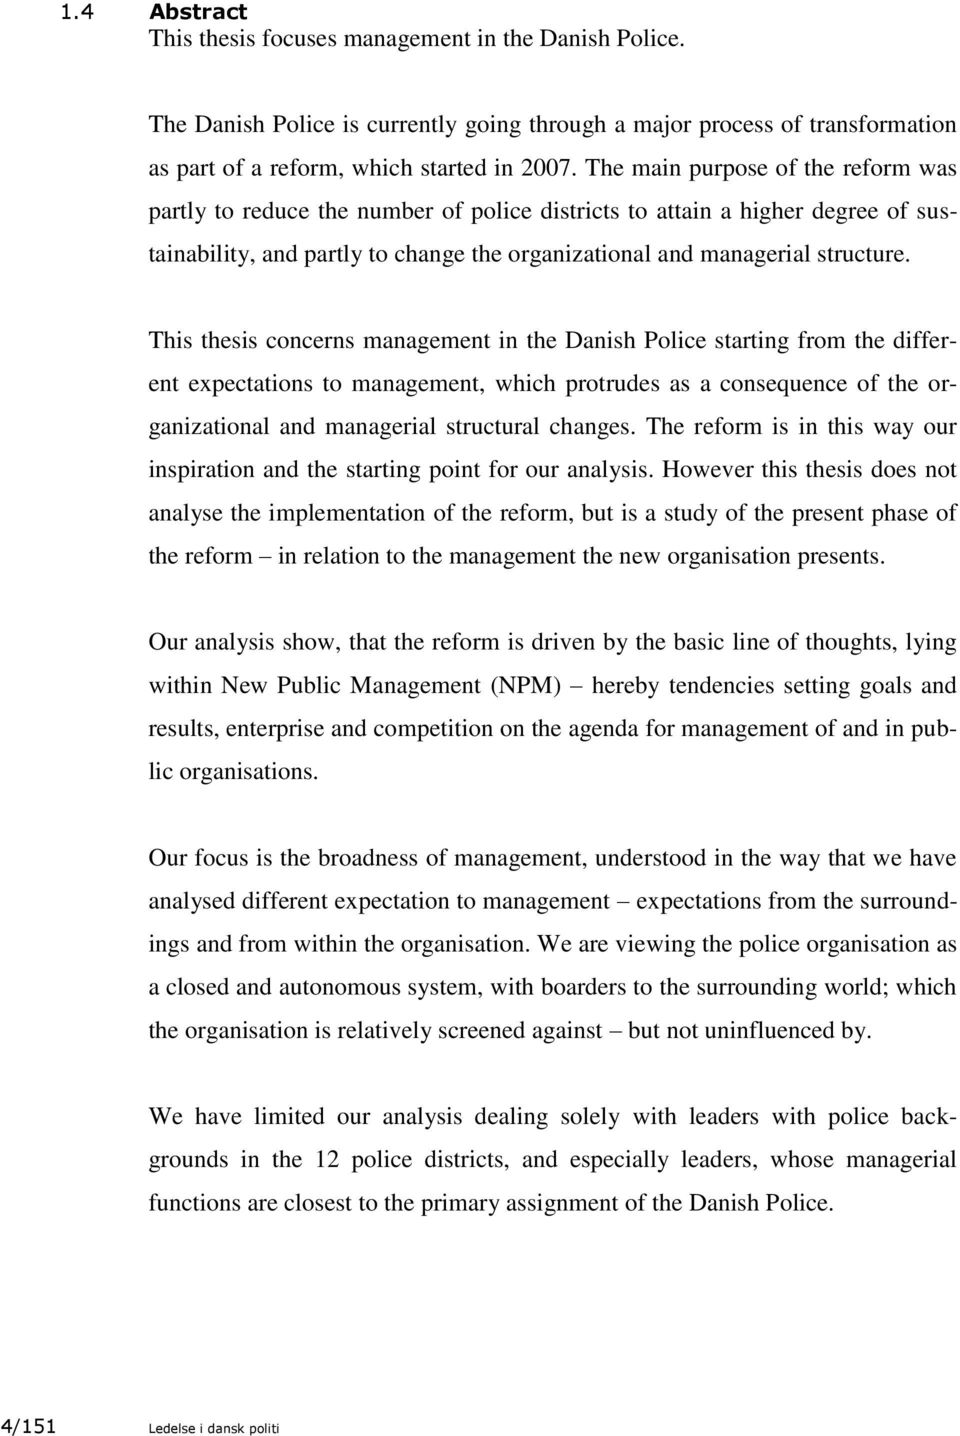 This thesis concerns management in the Danish Police starting from the different expectations to management, which protrudes as a consequence of the organizational and managerial structural changes.